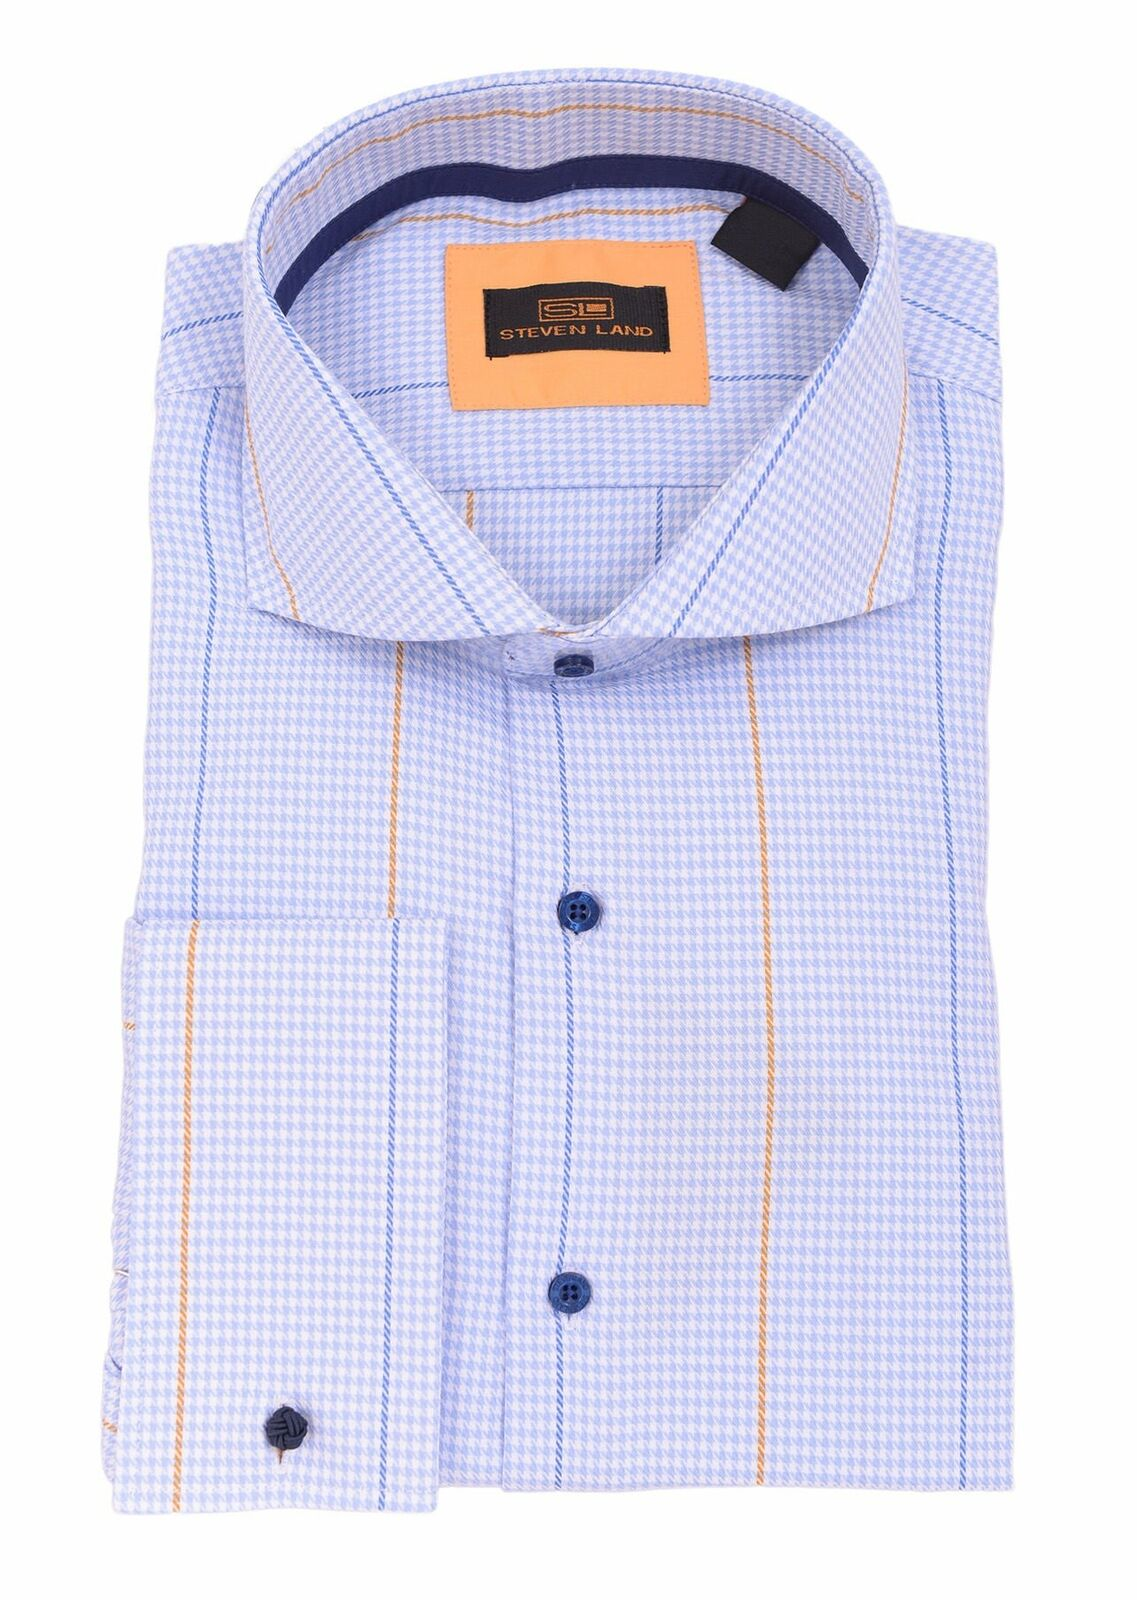 Steven Land Light bluee Houndstooth Spread Collar French Cuff Cotton Dress Shirt